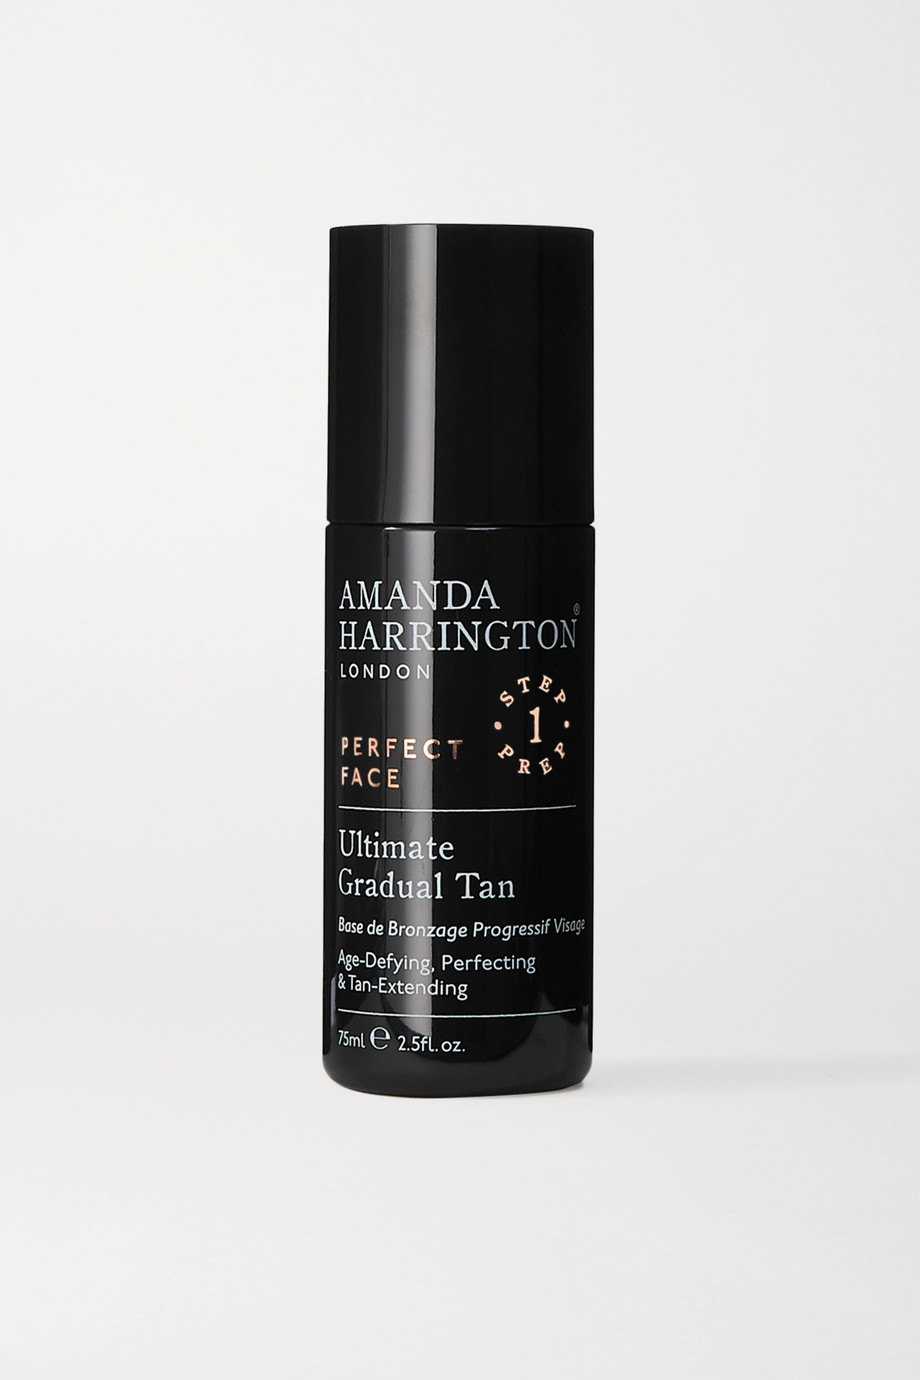 Amanda Harrington Perfect Face Ultimate Gradual Tan, 75ml